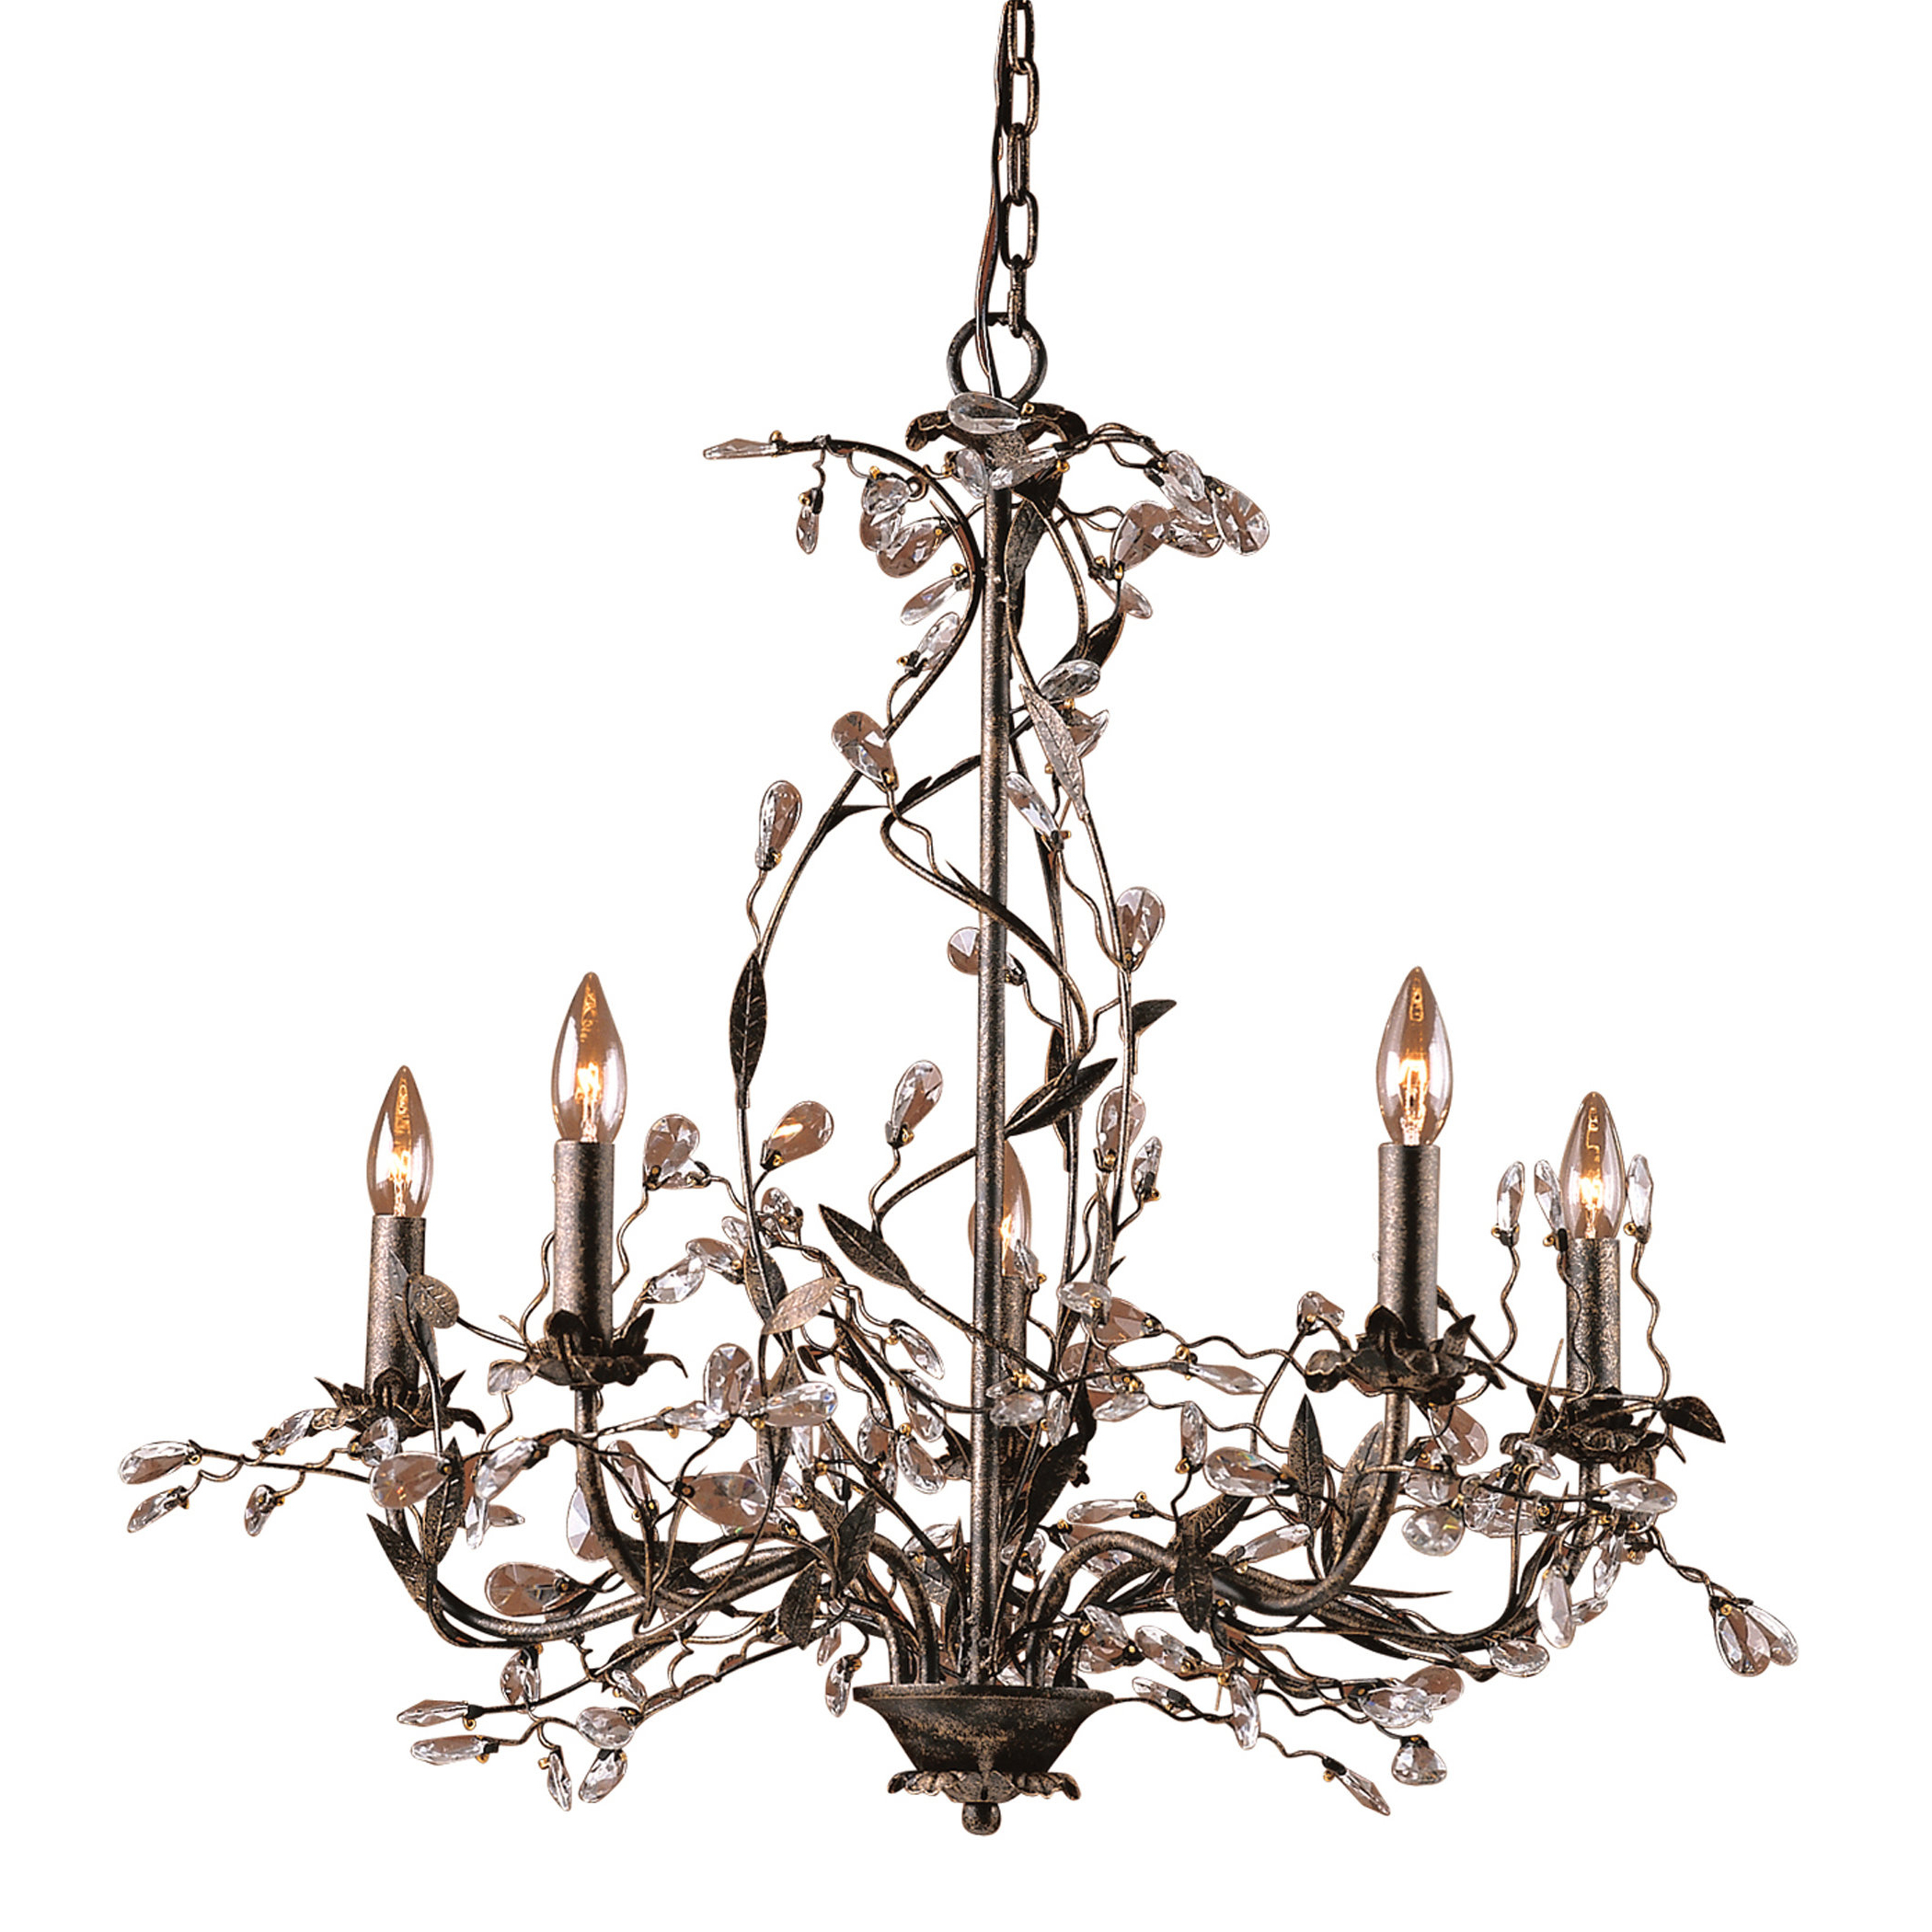 Popular Lorraine 5 Light Chandelier Within Hesse 5 Light Candle Style Chandeliers (Gallery 10 of 20)